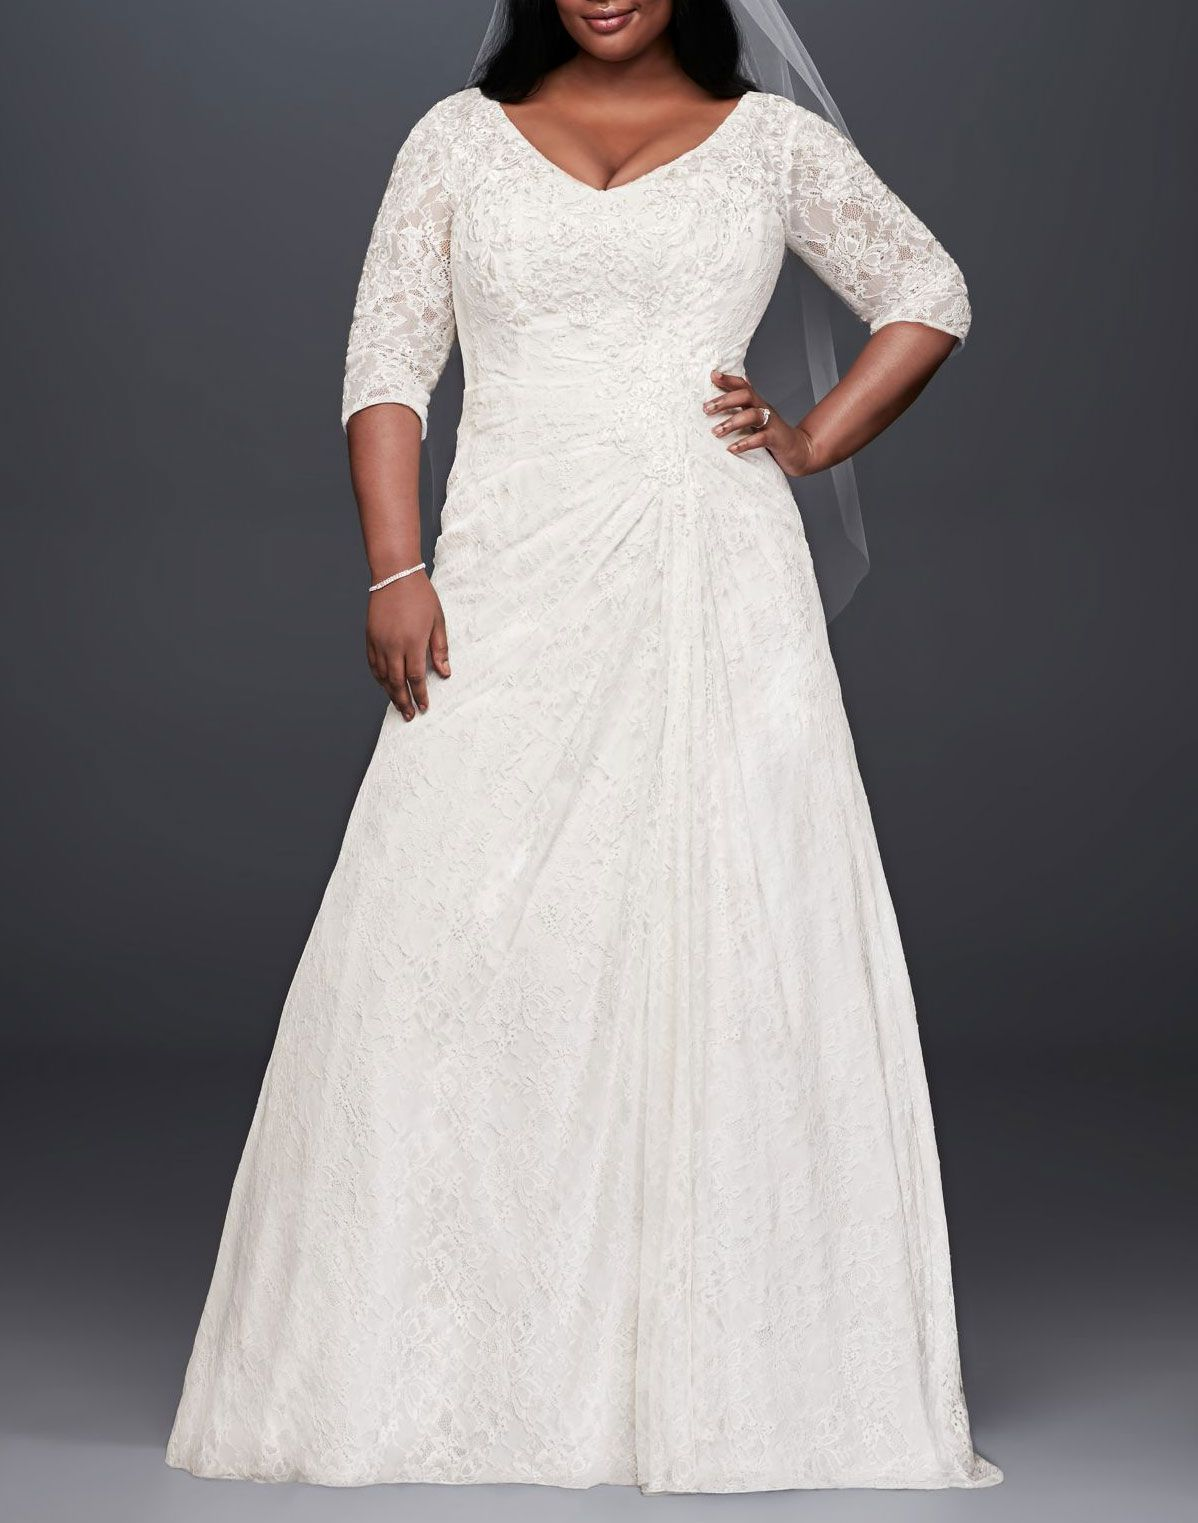 David's Bridal Collection Draped Lace A-Line Plus Size Wedding Dress